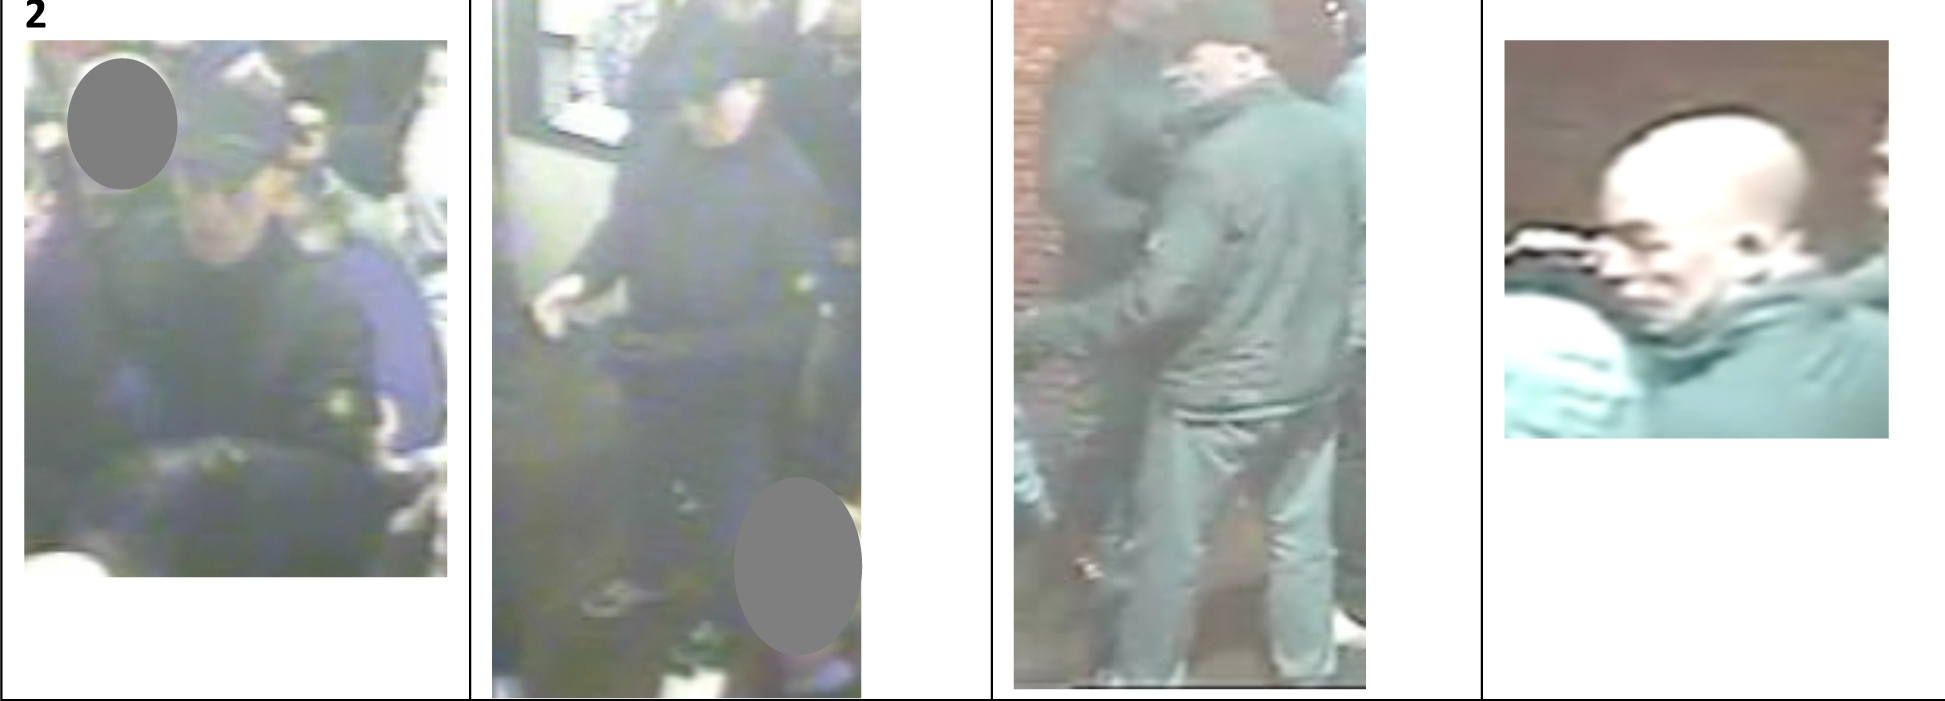 New CCTV appeal following Burnley Miner's Club brawl